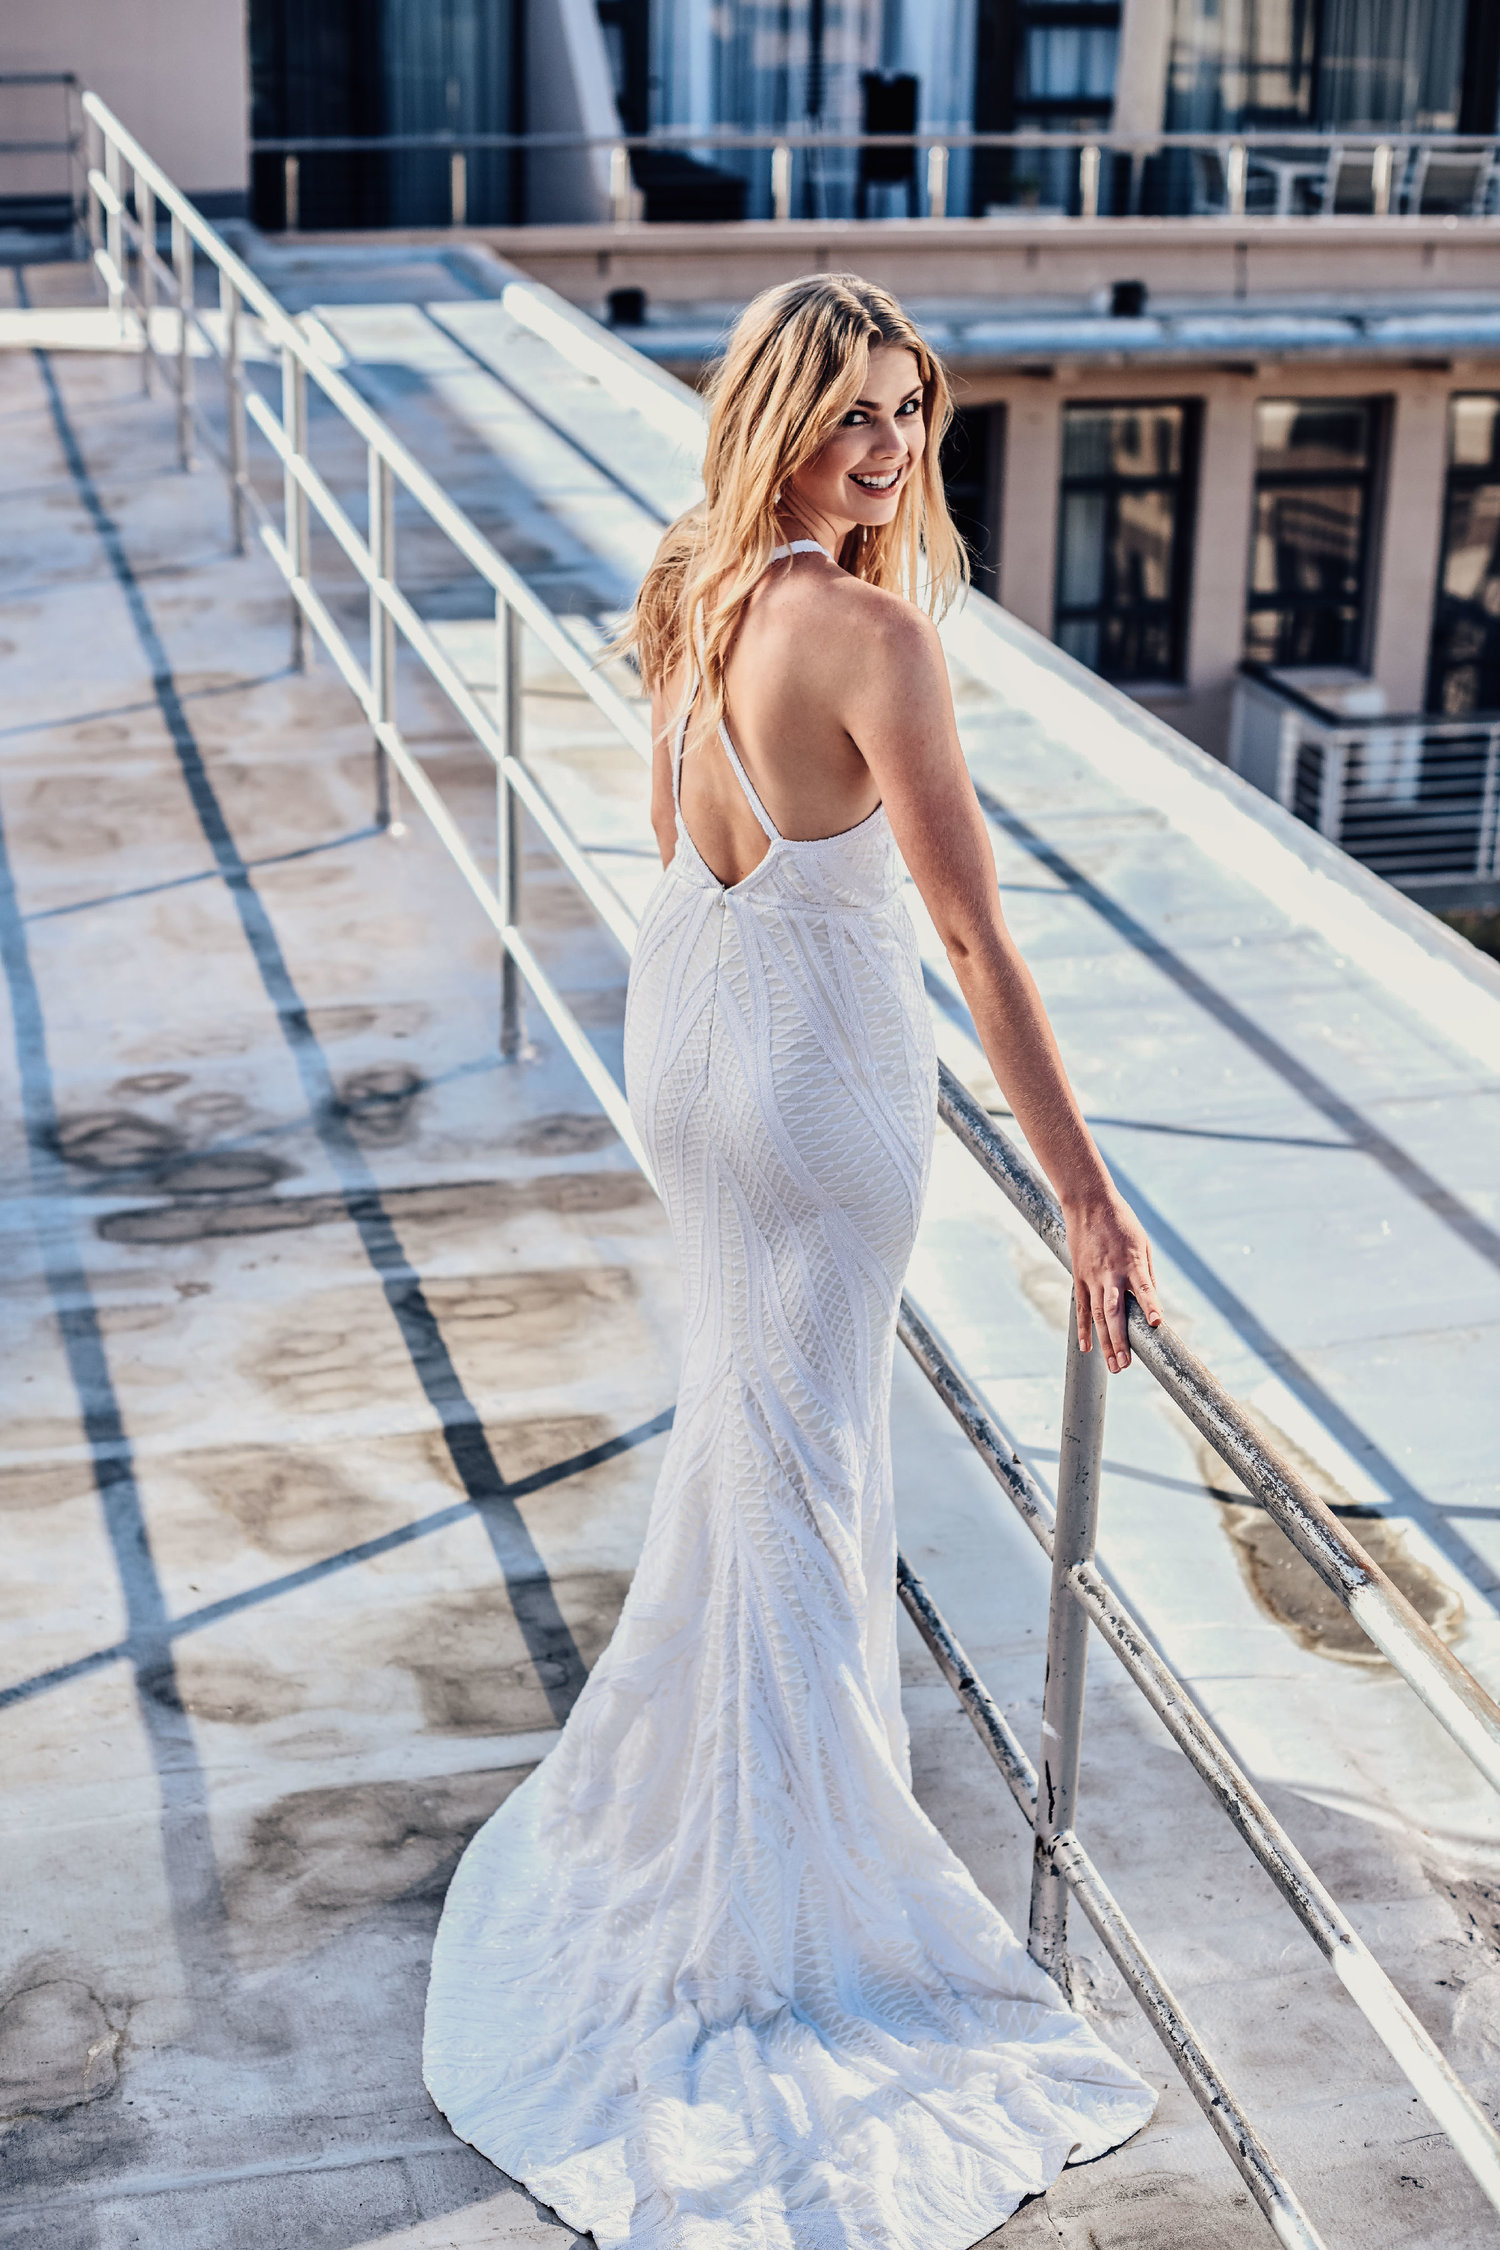 berberis - The Berberis Gown is designed with a halterneck to accentuate your shoulders, and lines of sequins draw the eye down the perfectly fitted shape. Move the way you want with a short train at the back, and high slit in the center front that exudes carefree glamour.